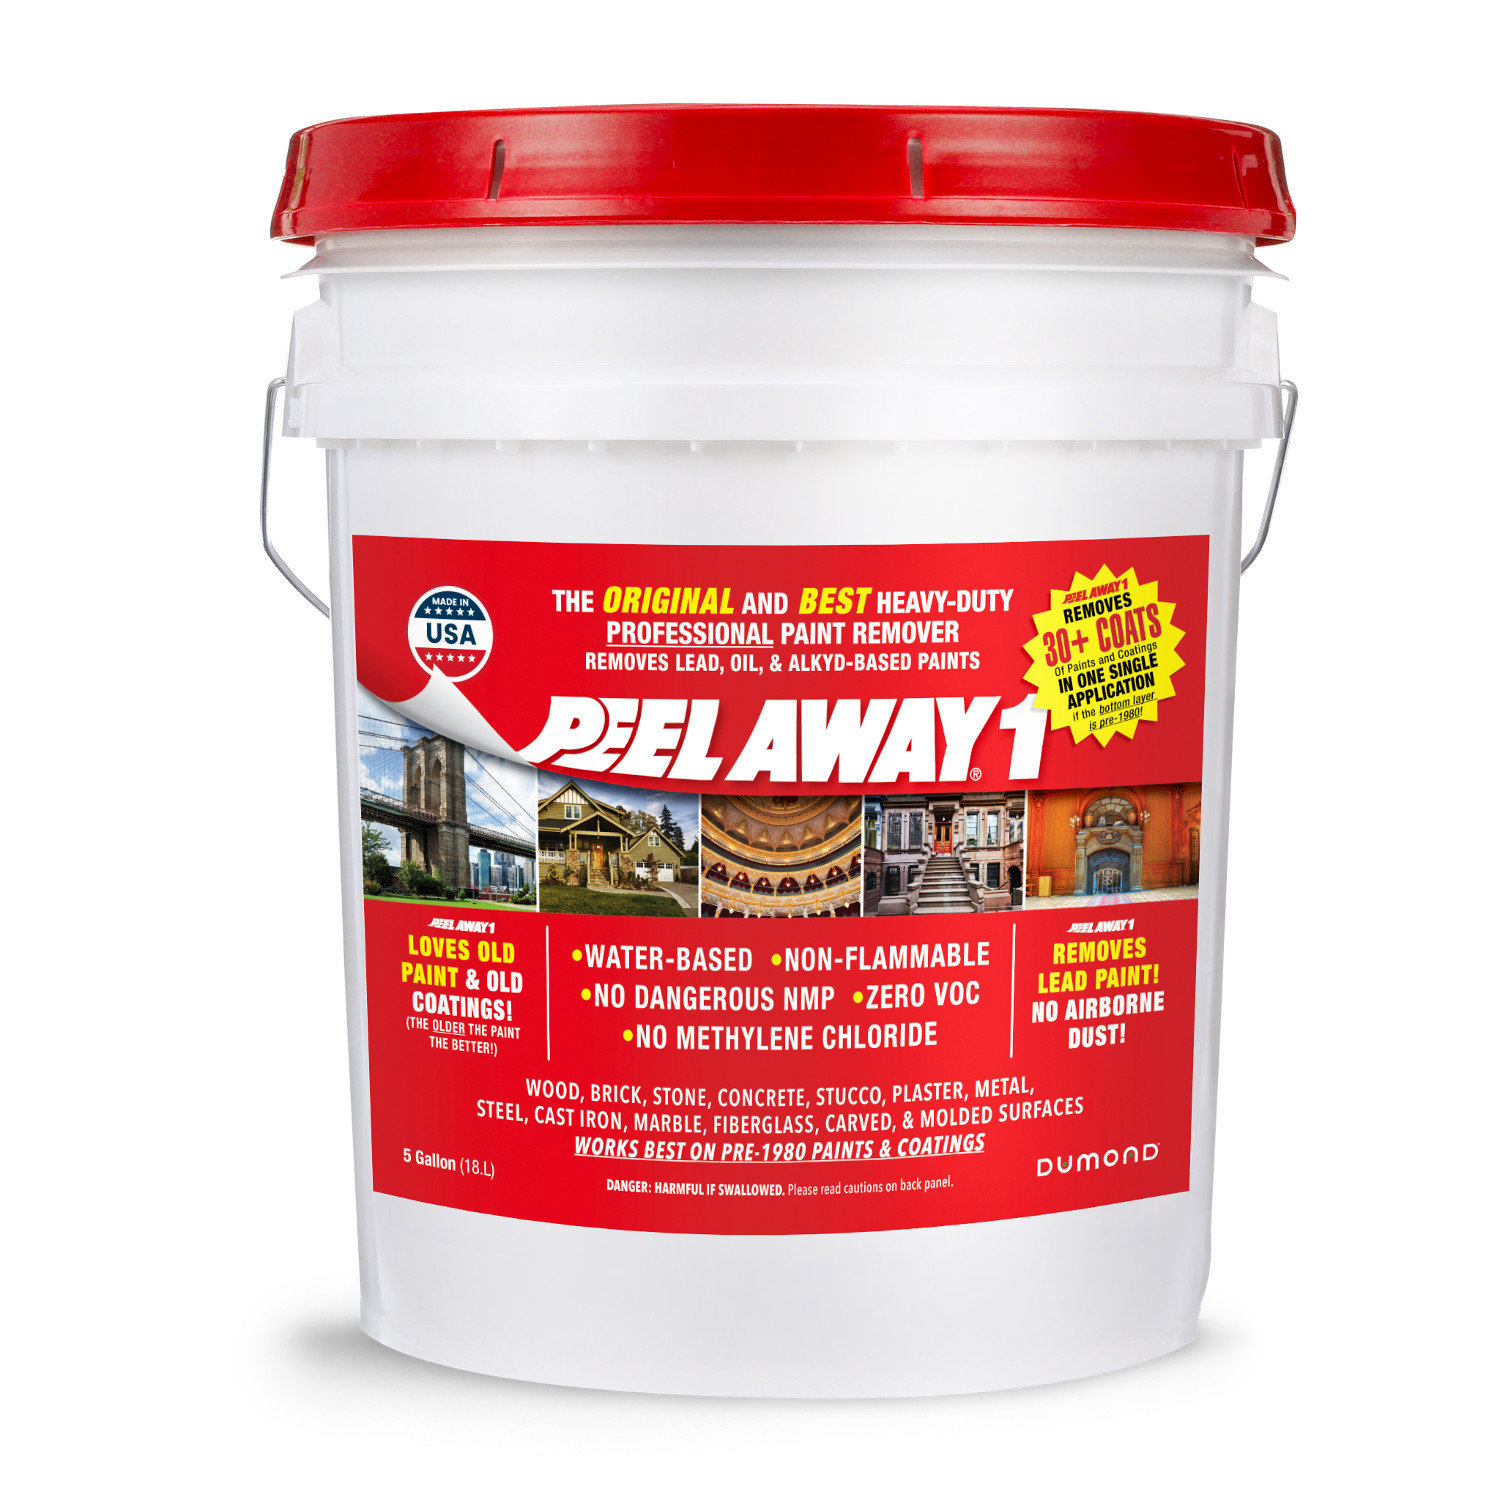 Heavy Duty Paint Remover Complete Removal System